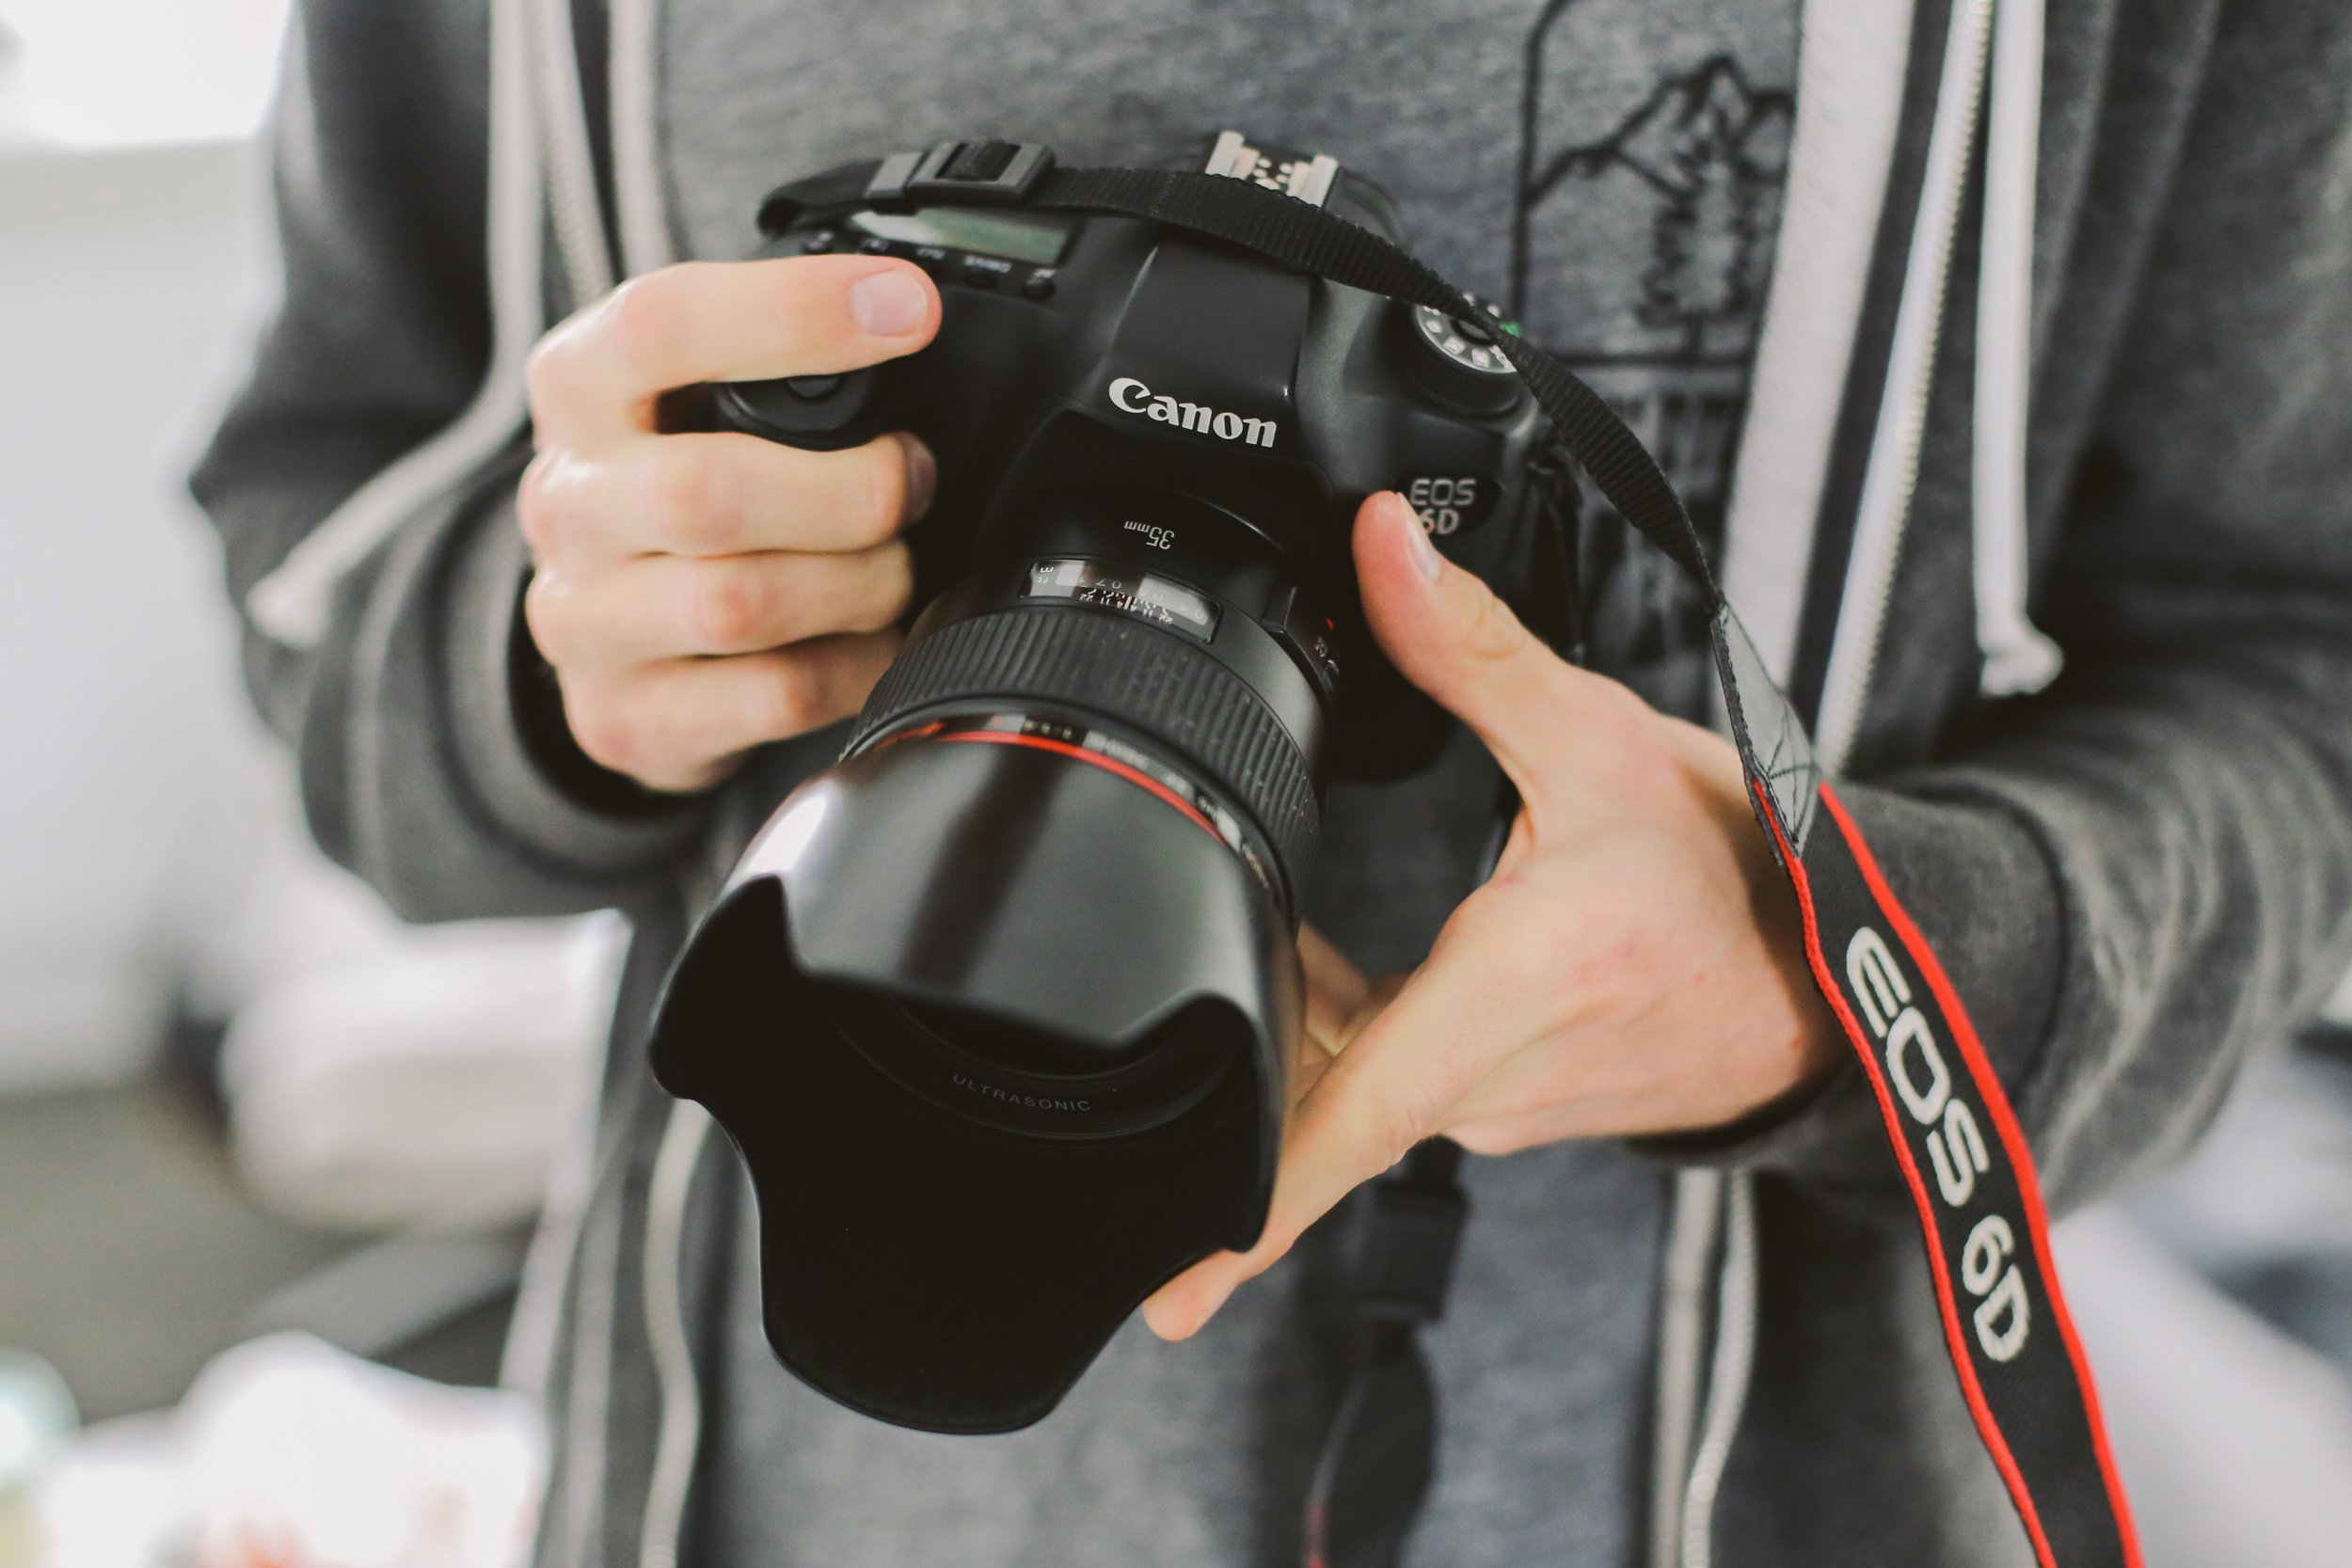 PHOTOGRAPHY - Wedding photography, corporate headshots, real estate photography and much more! Elevate your brand and online presence with professional photography.